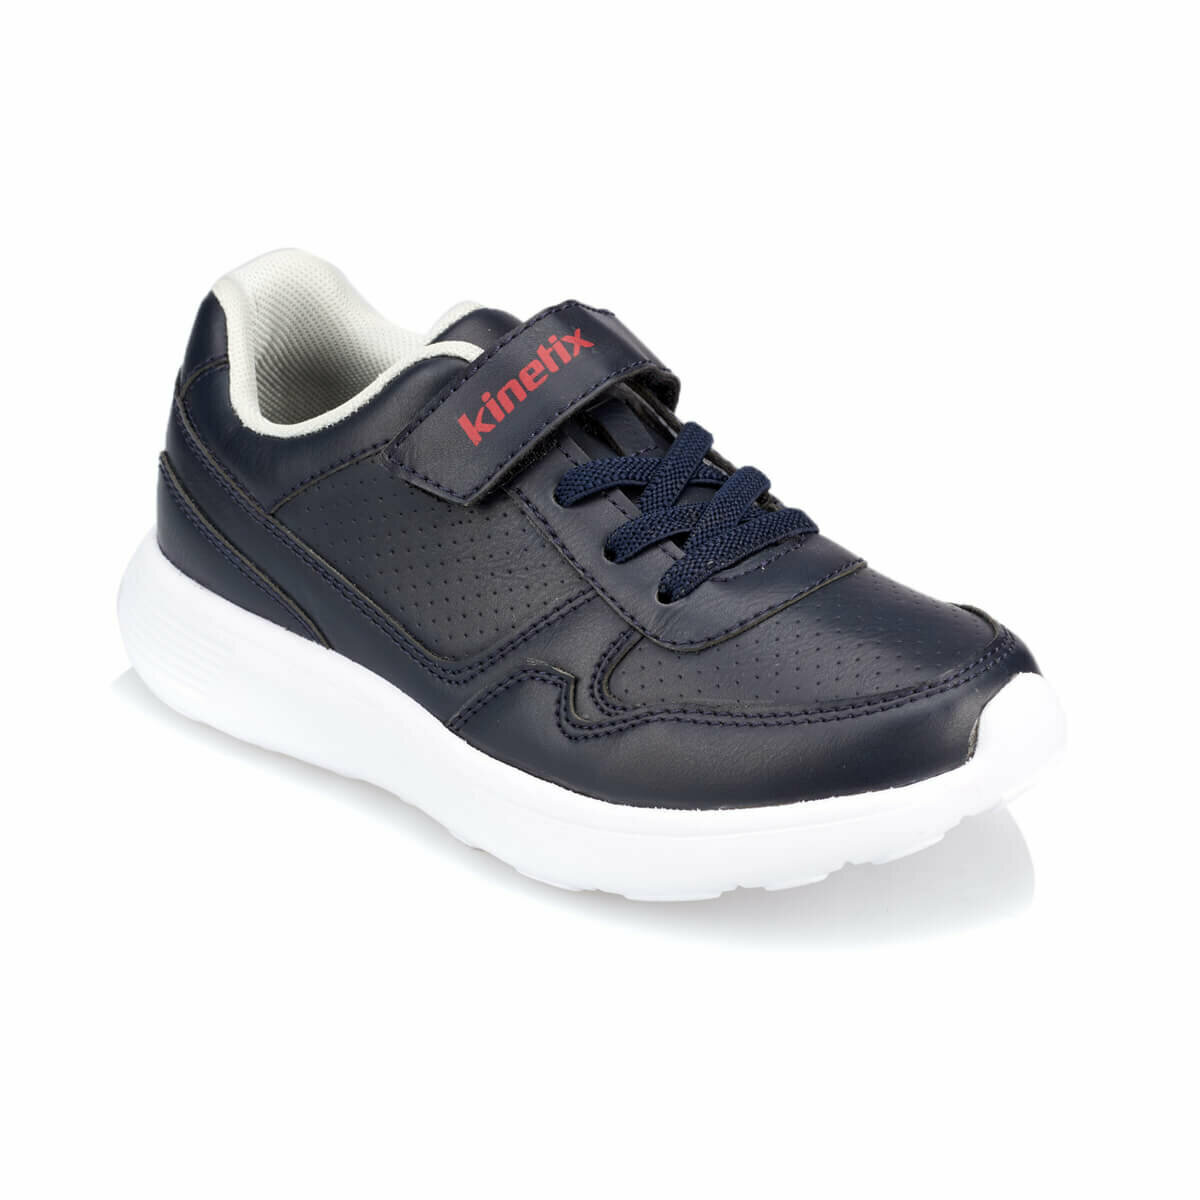 FLO CAPE Navy Blue Male Child Sports Shoes KINETIX